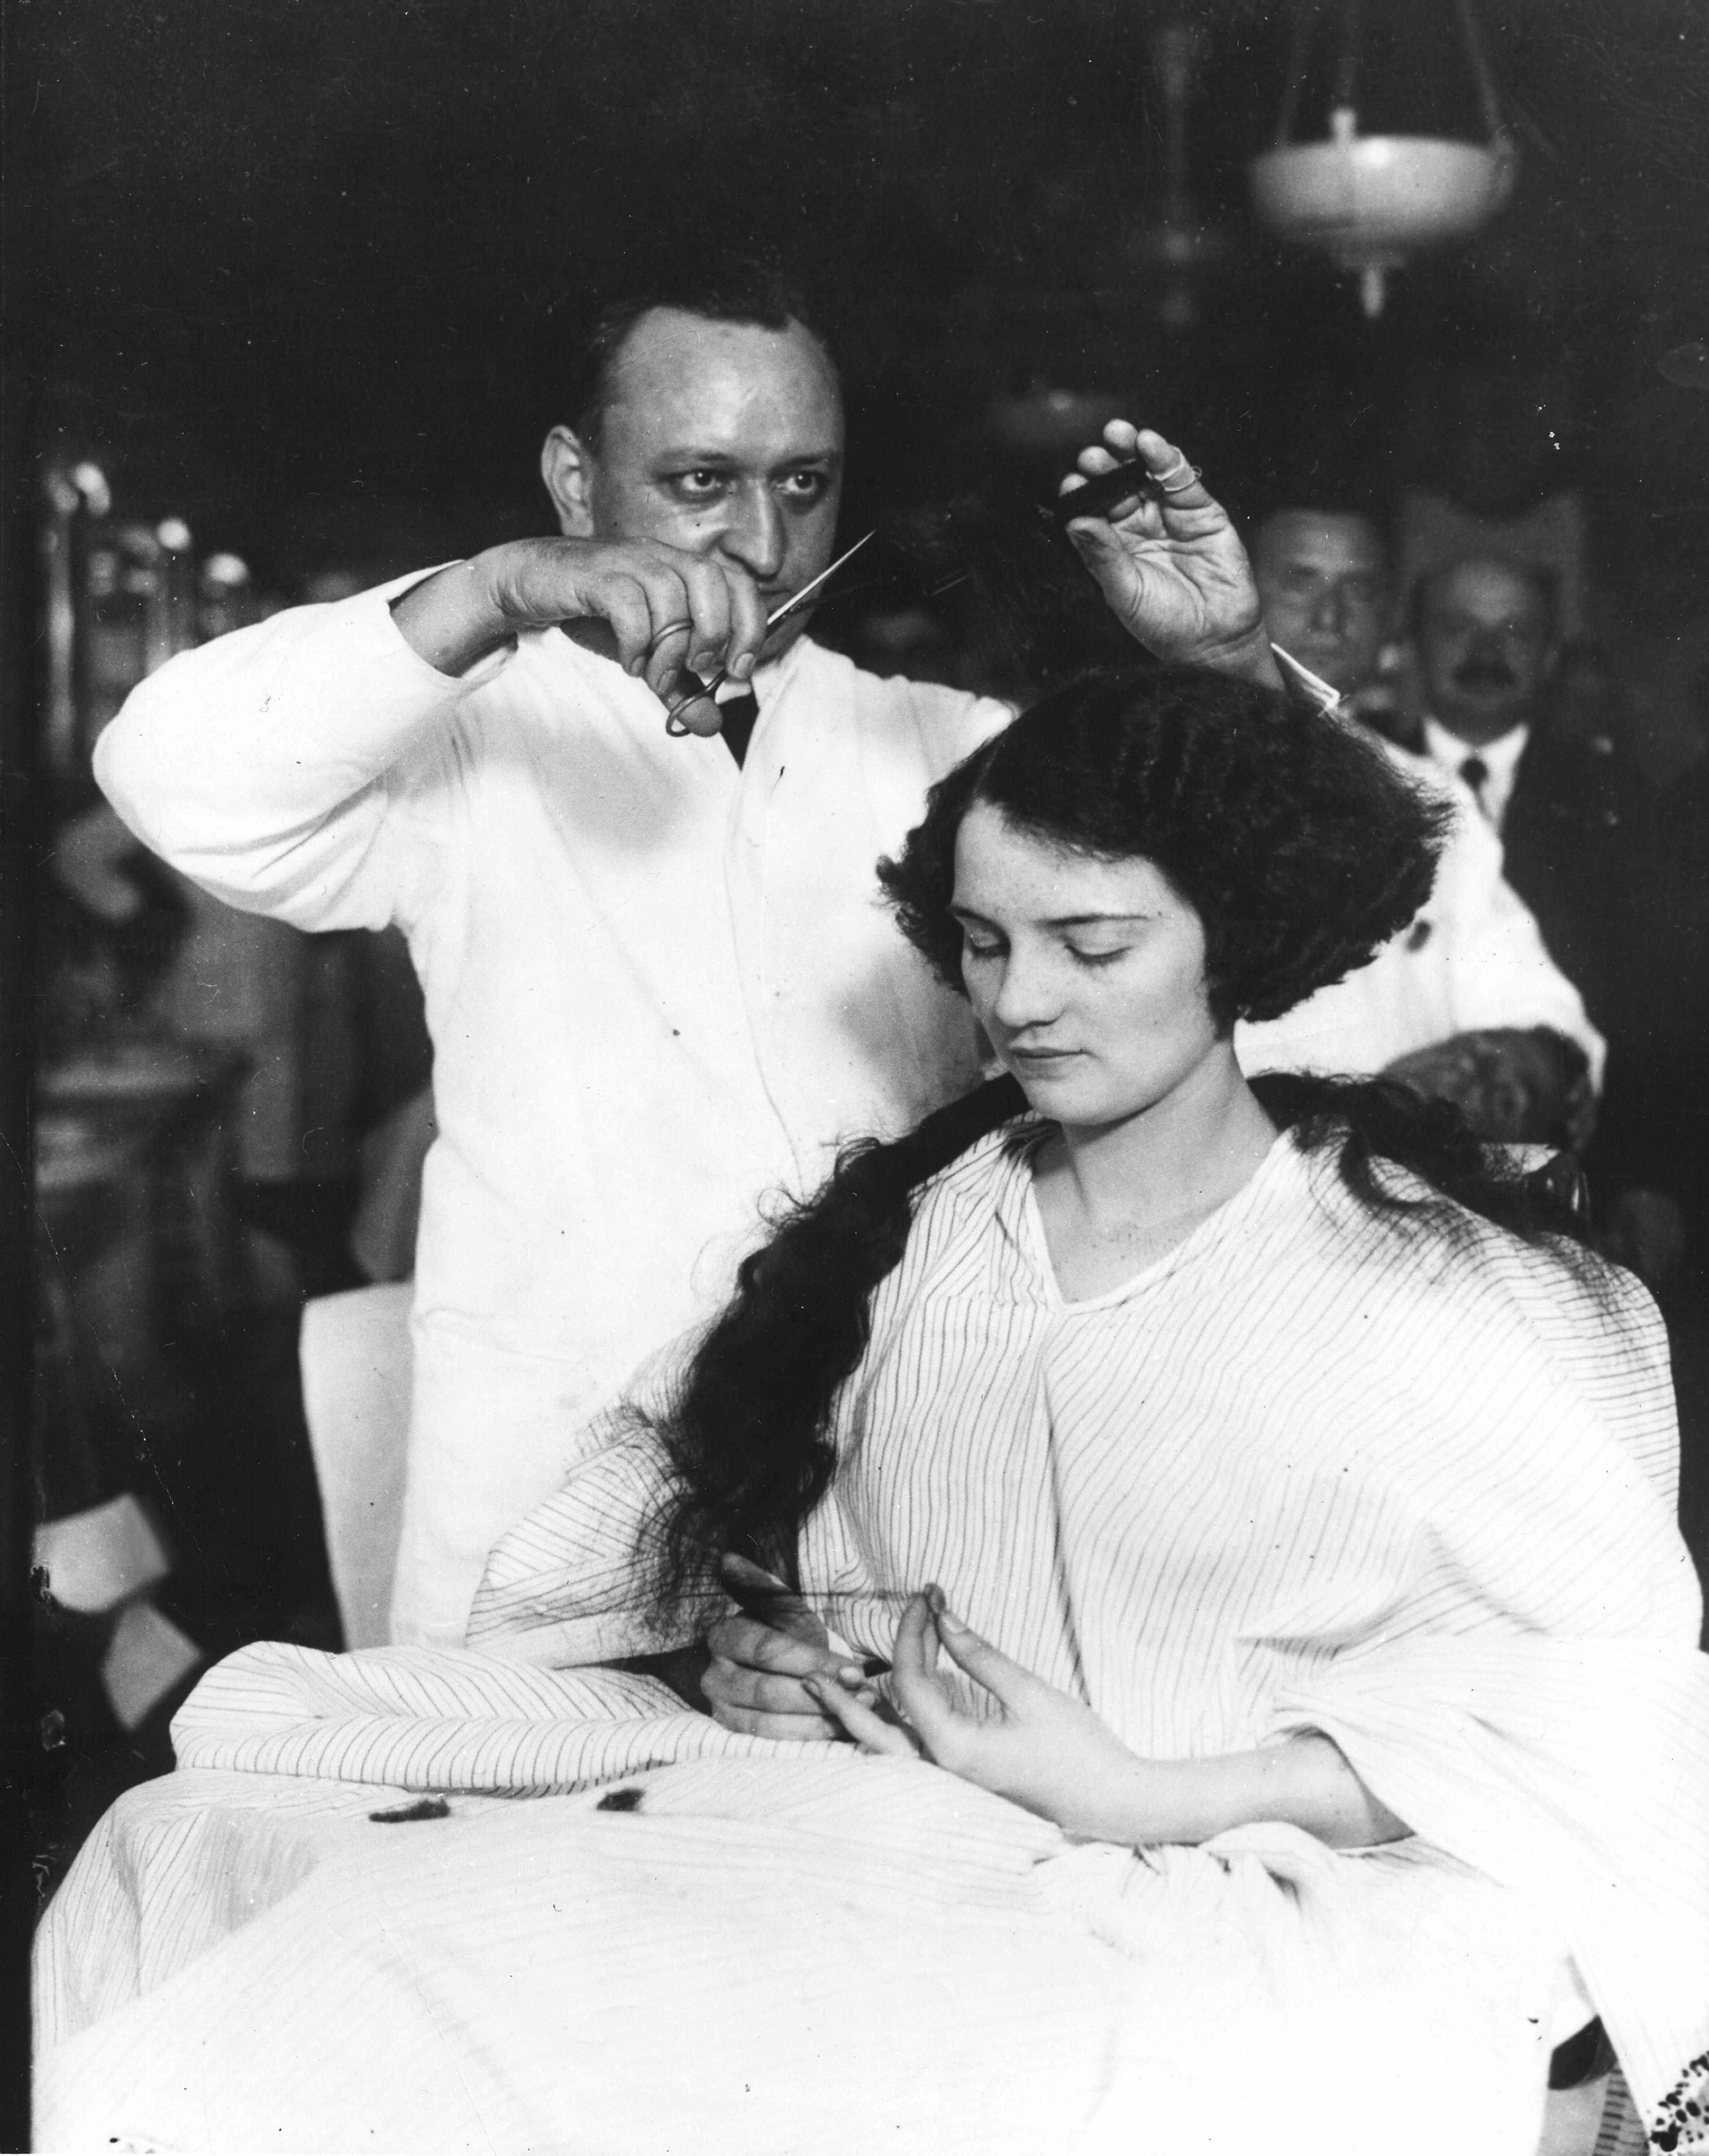 A young woman spurns centuries of tradition by getting her hair cut in to a bob at the start of the 20th century. (Photo by PhotoQuest/Getty Images)